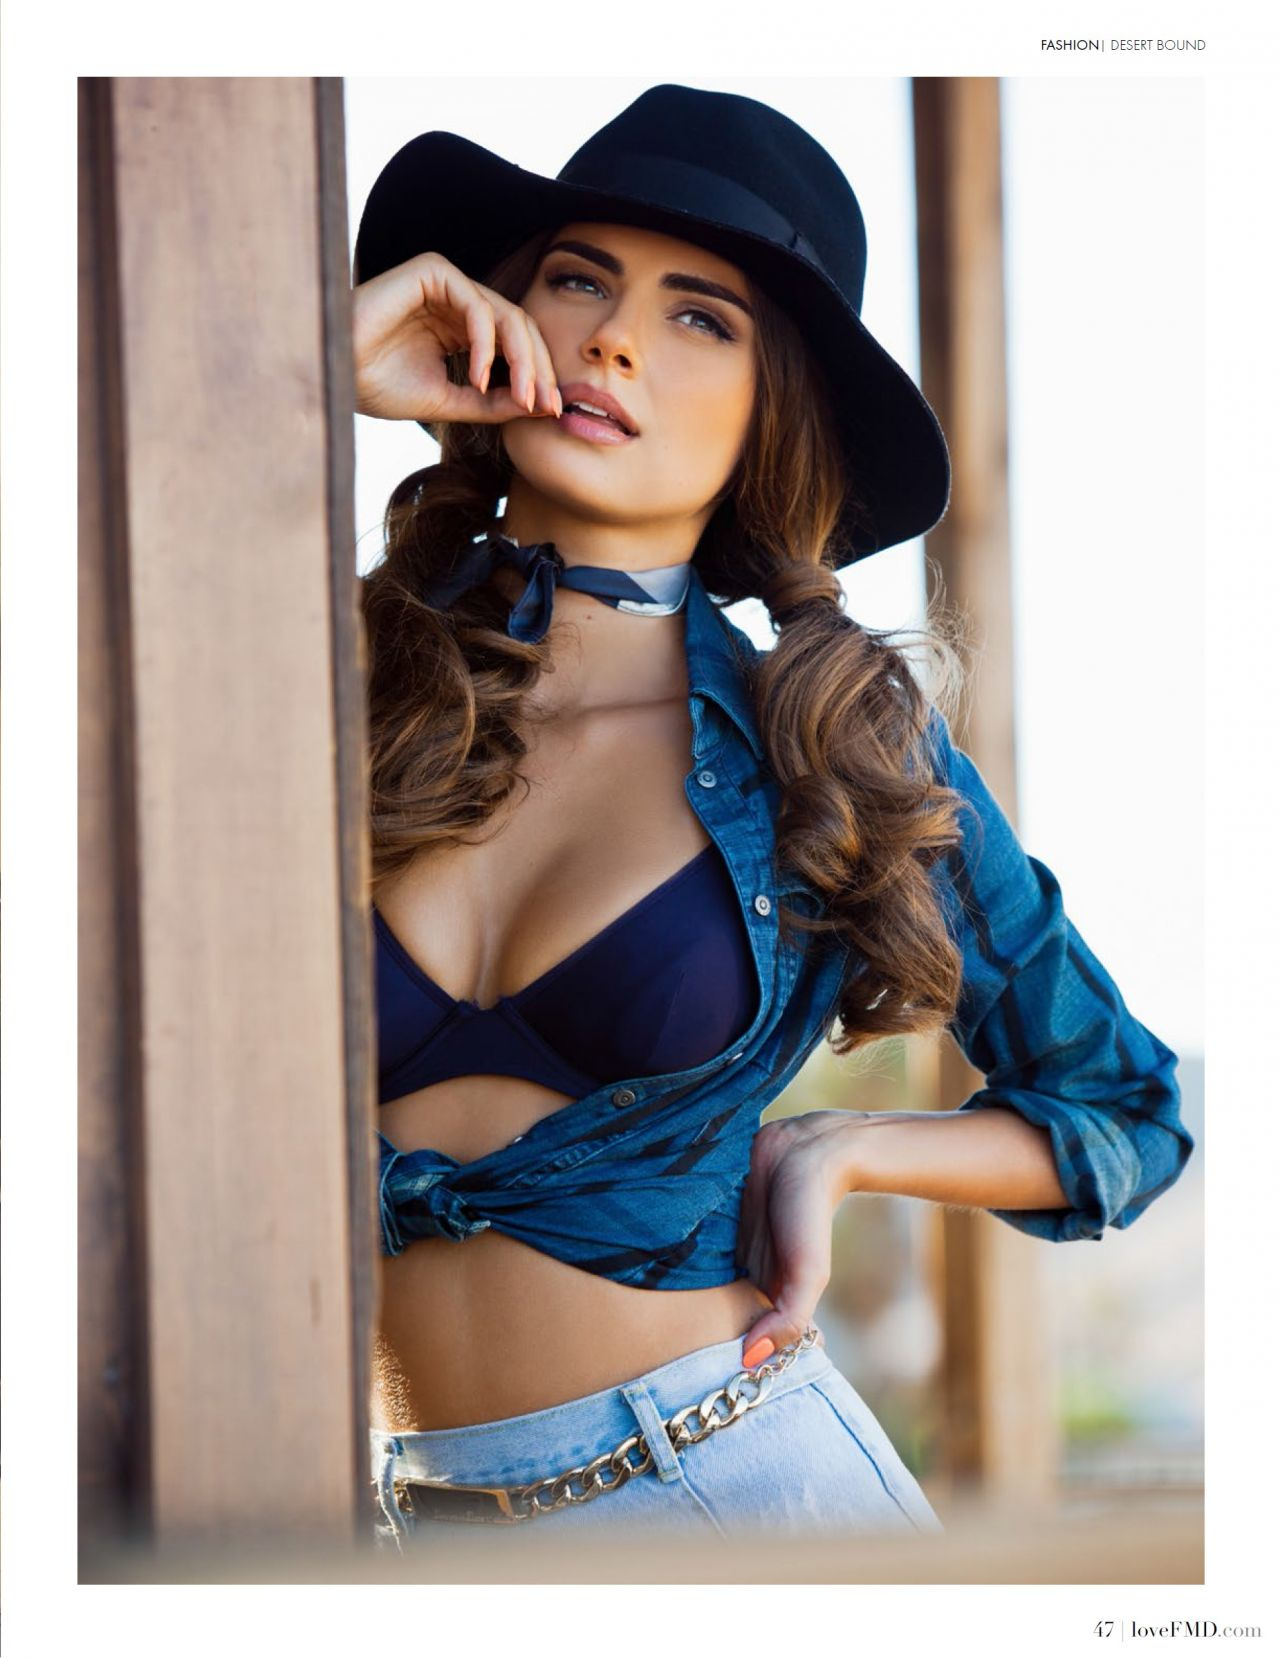 Xenia Deli - LOVE FMD Magazine Spring / Summer 2015 Issue